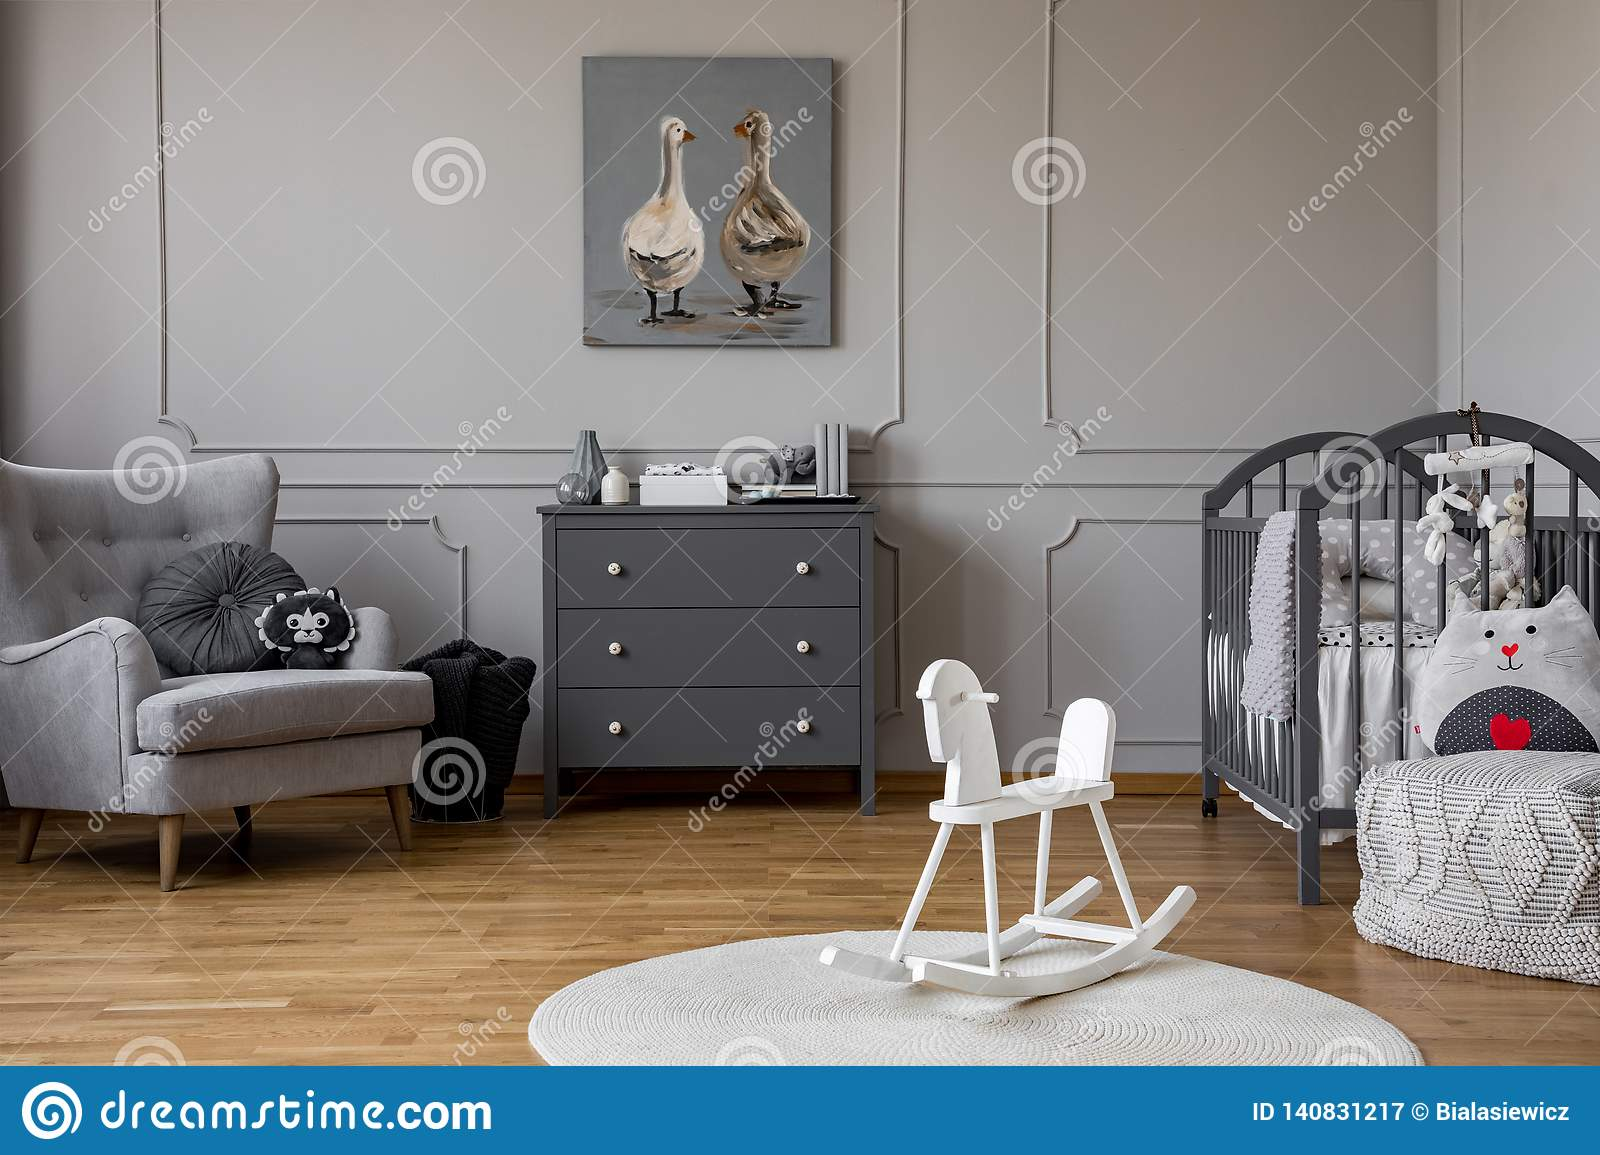 White rocking horse on rug in grey kid`s bedroom interior with poster above cabinet. Real photo